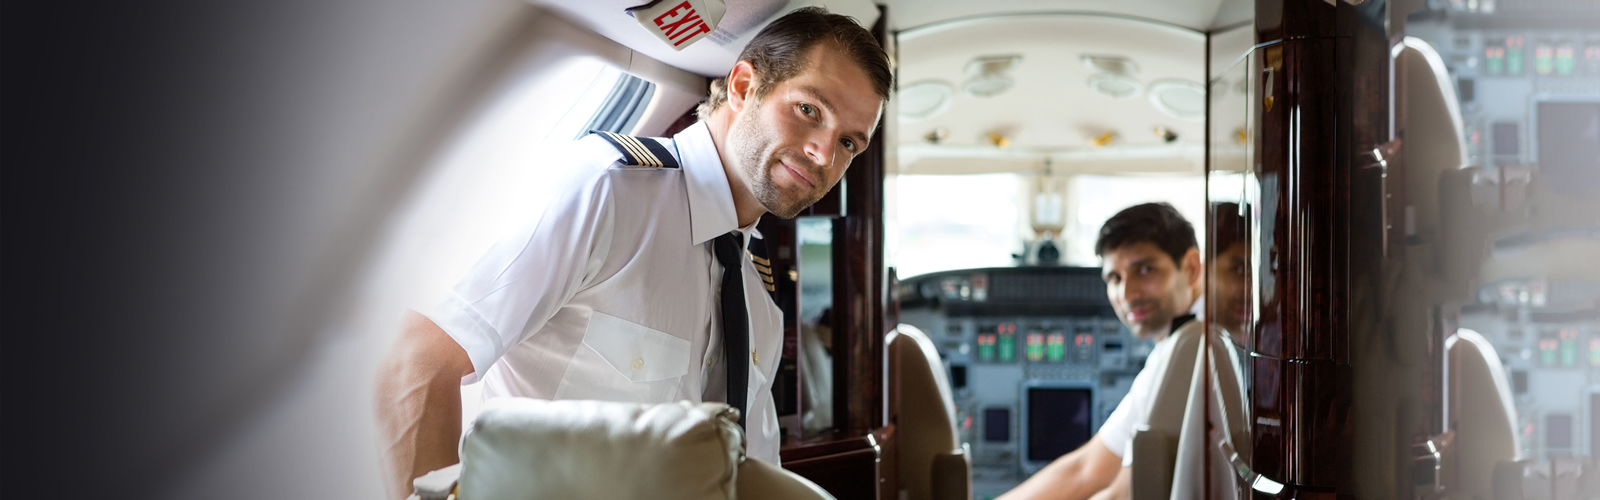 Freelance Aircrew - Your complete crewing solution for aircraft - Pilots